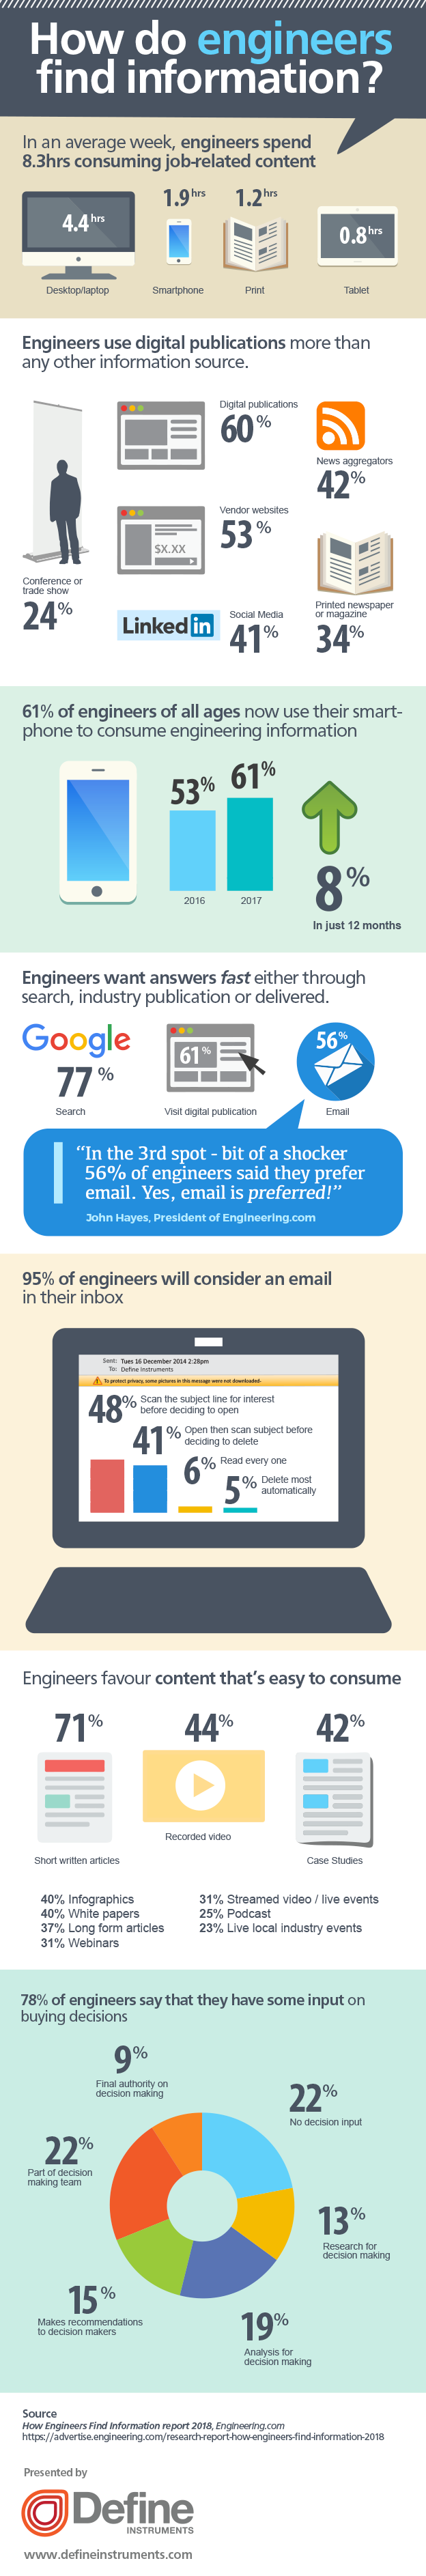 How Engineers Find Information #Infographic